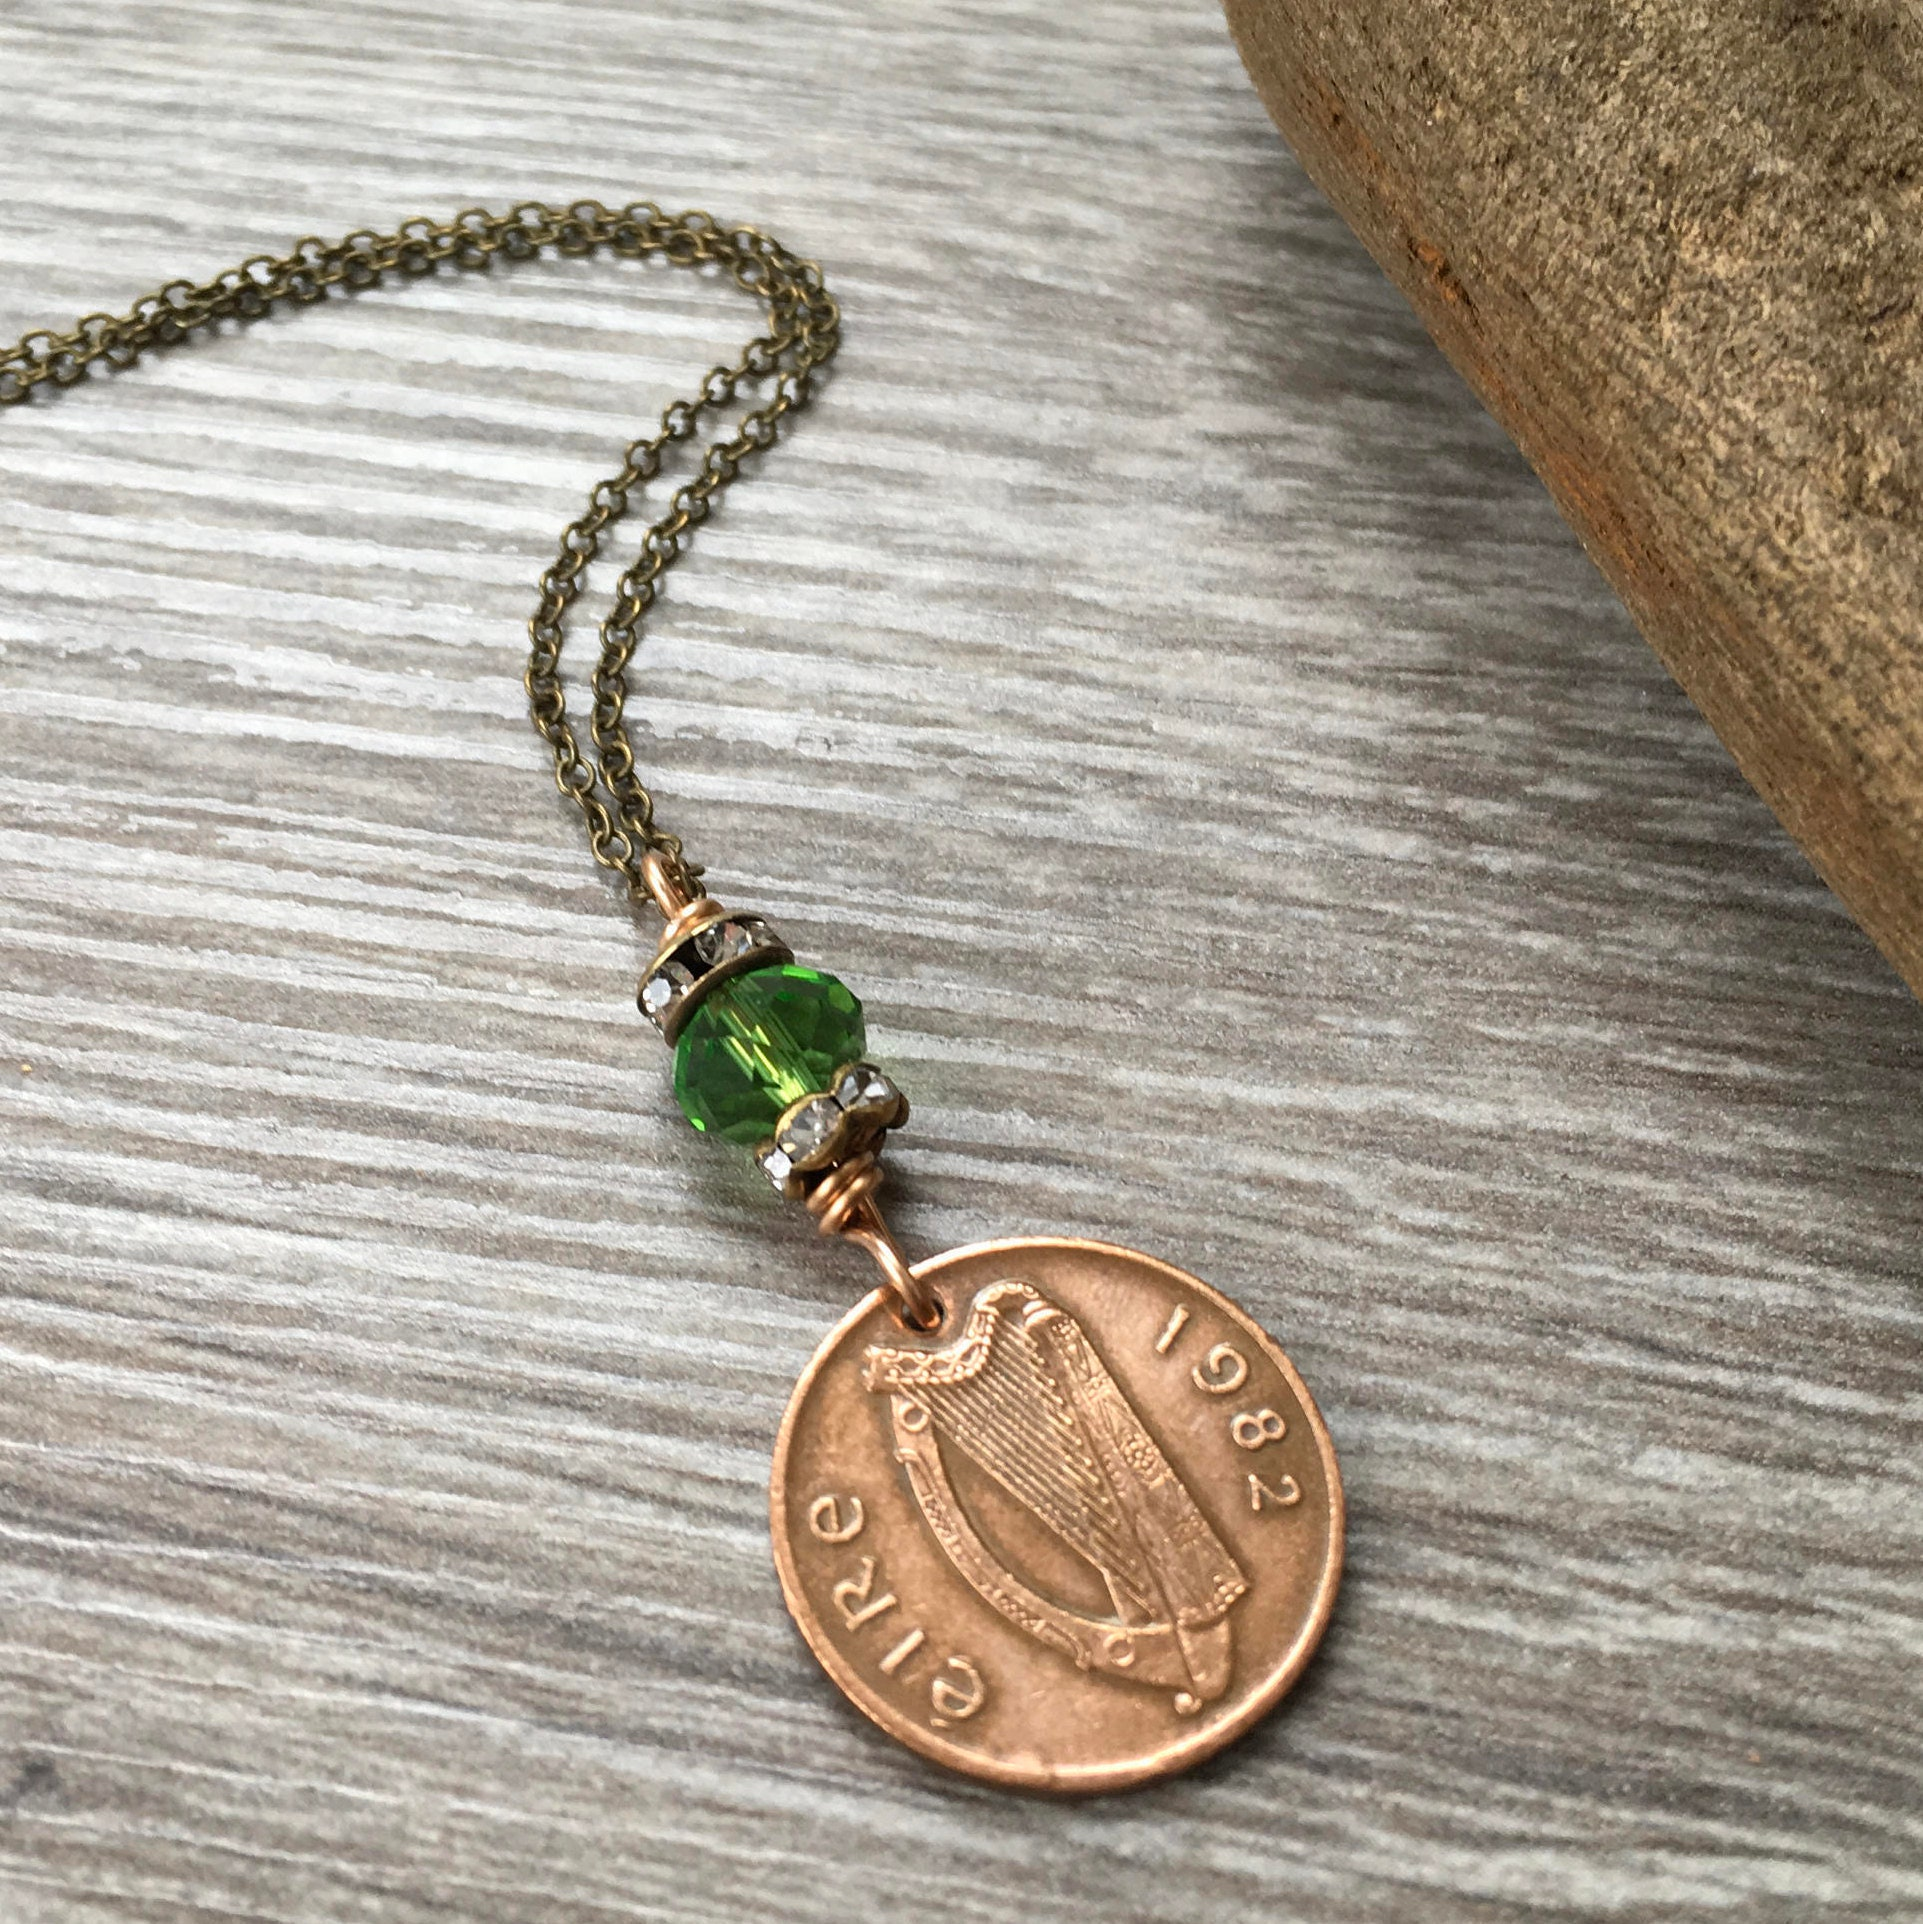 37th birthday gift, Irish coin necklace, 1982 celtic coin jewelry lucky